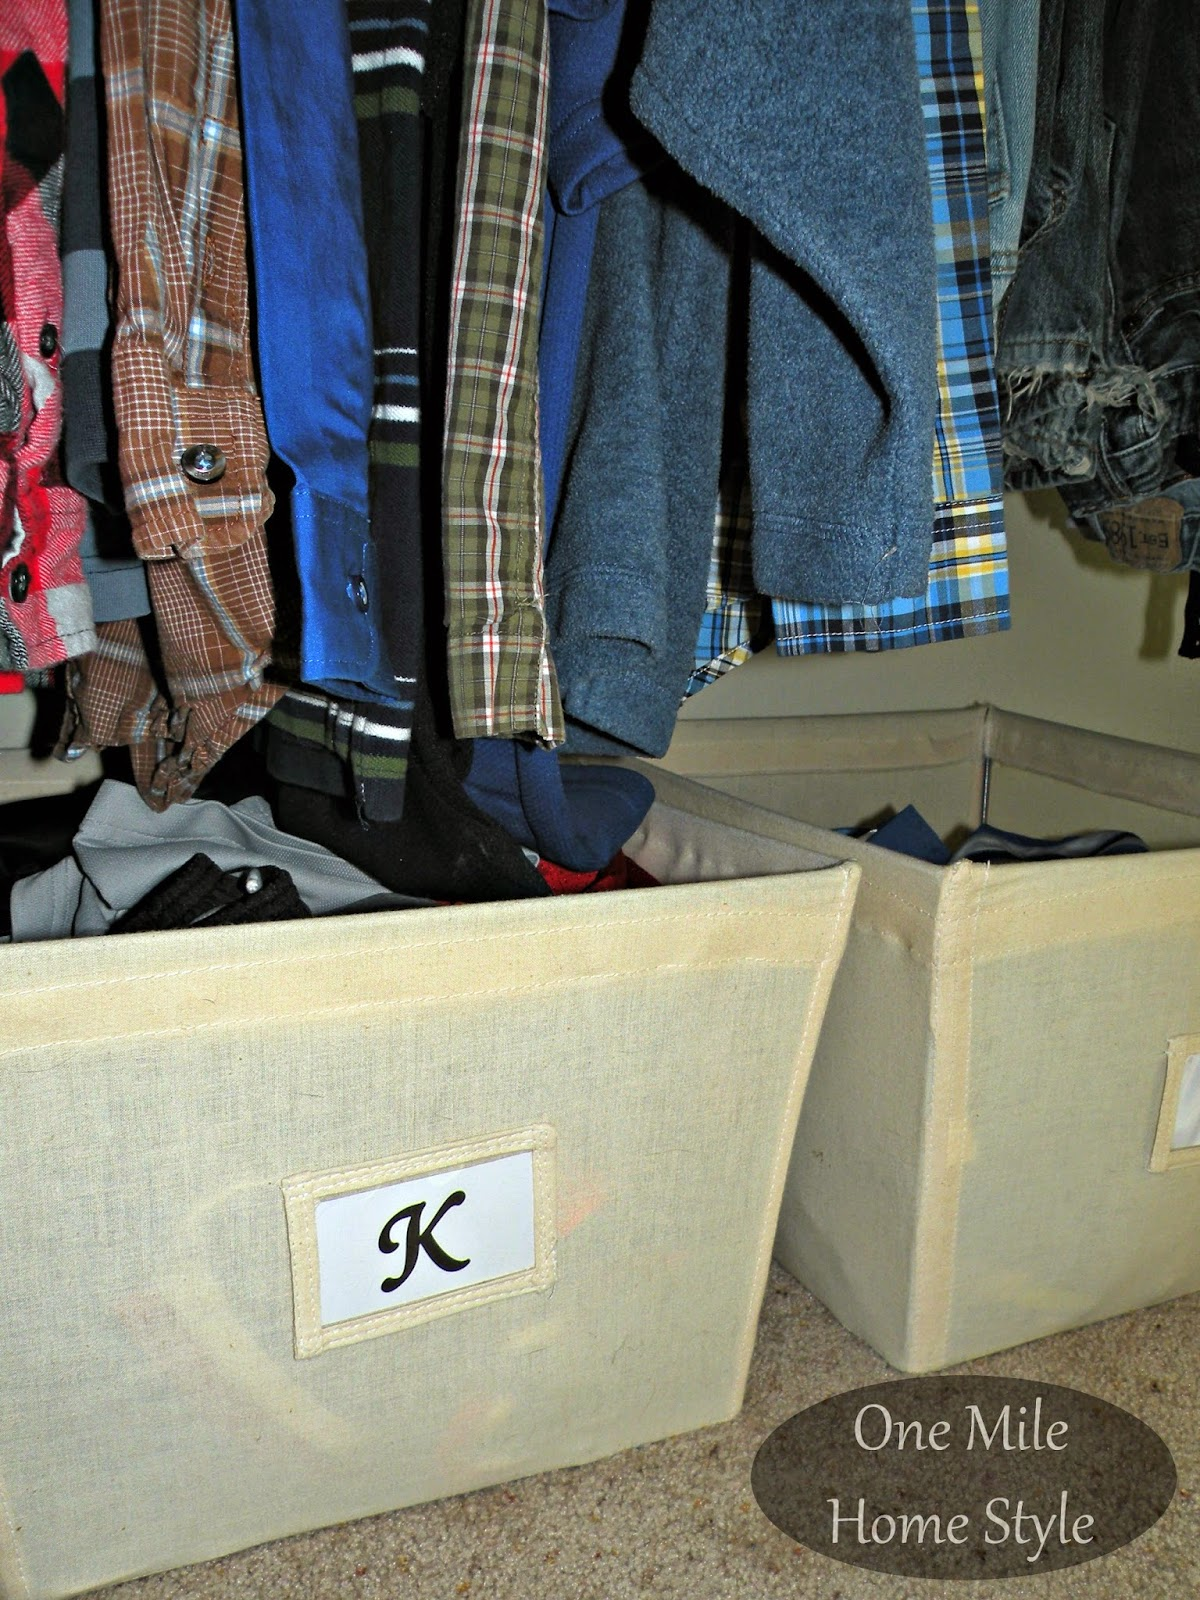 Canvas bins to organize athletic shorts and pants